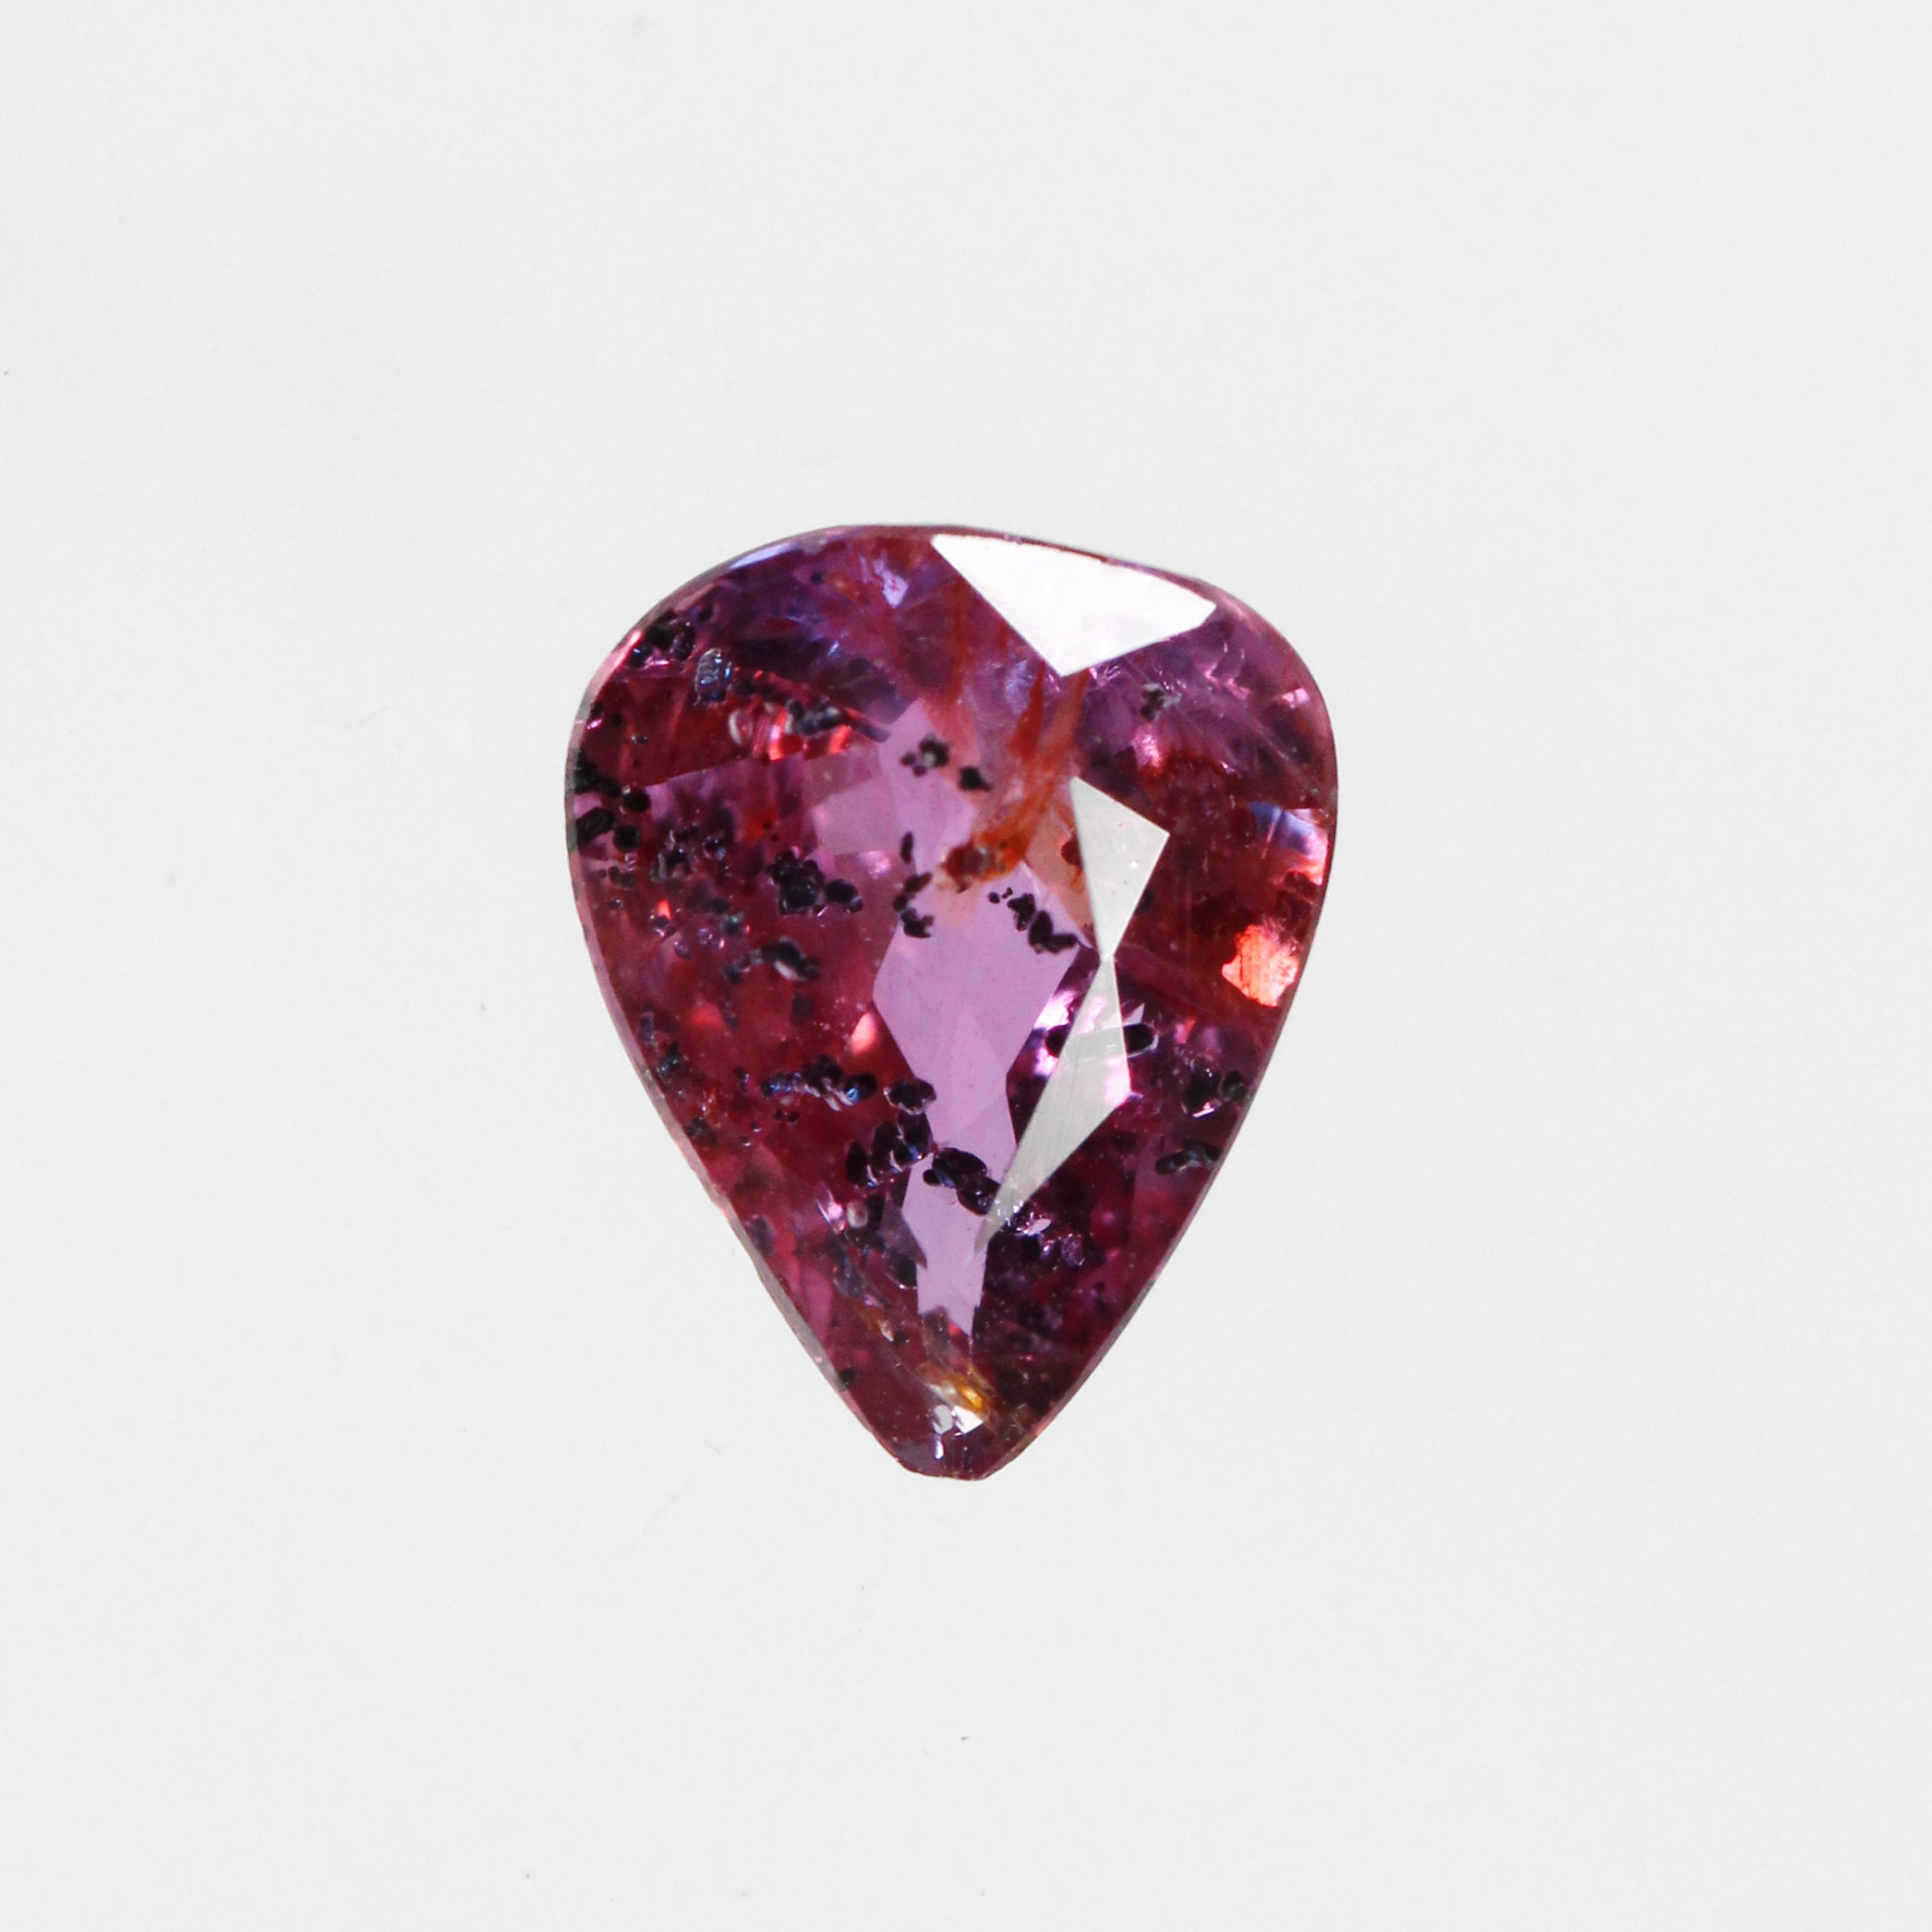 1.24 ct Pear Ruby / Sapphire for Custom Work - Inventory Code S124b